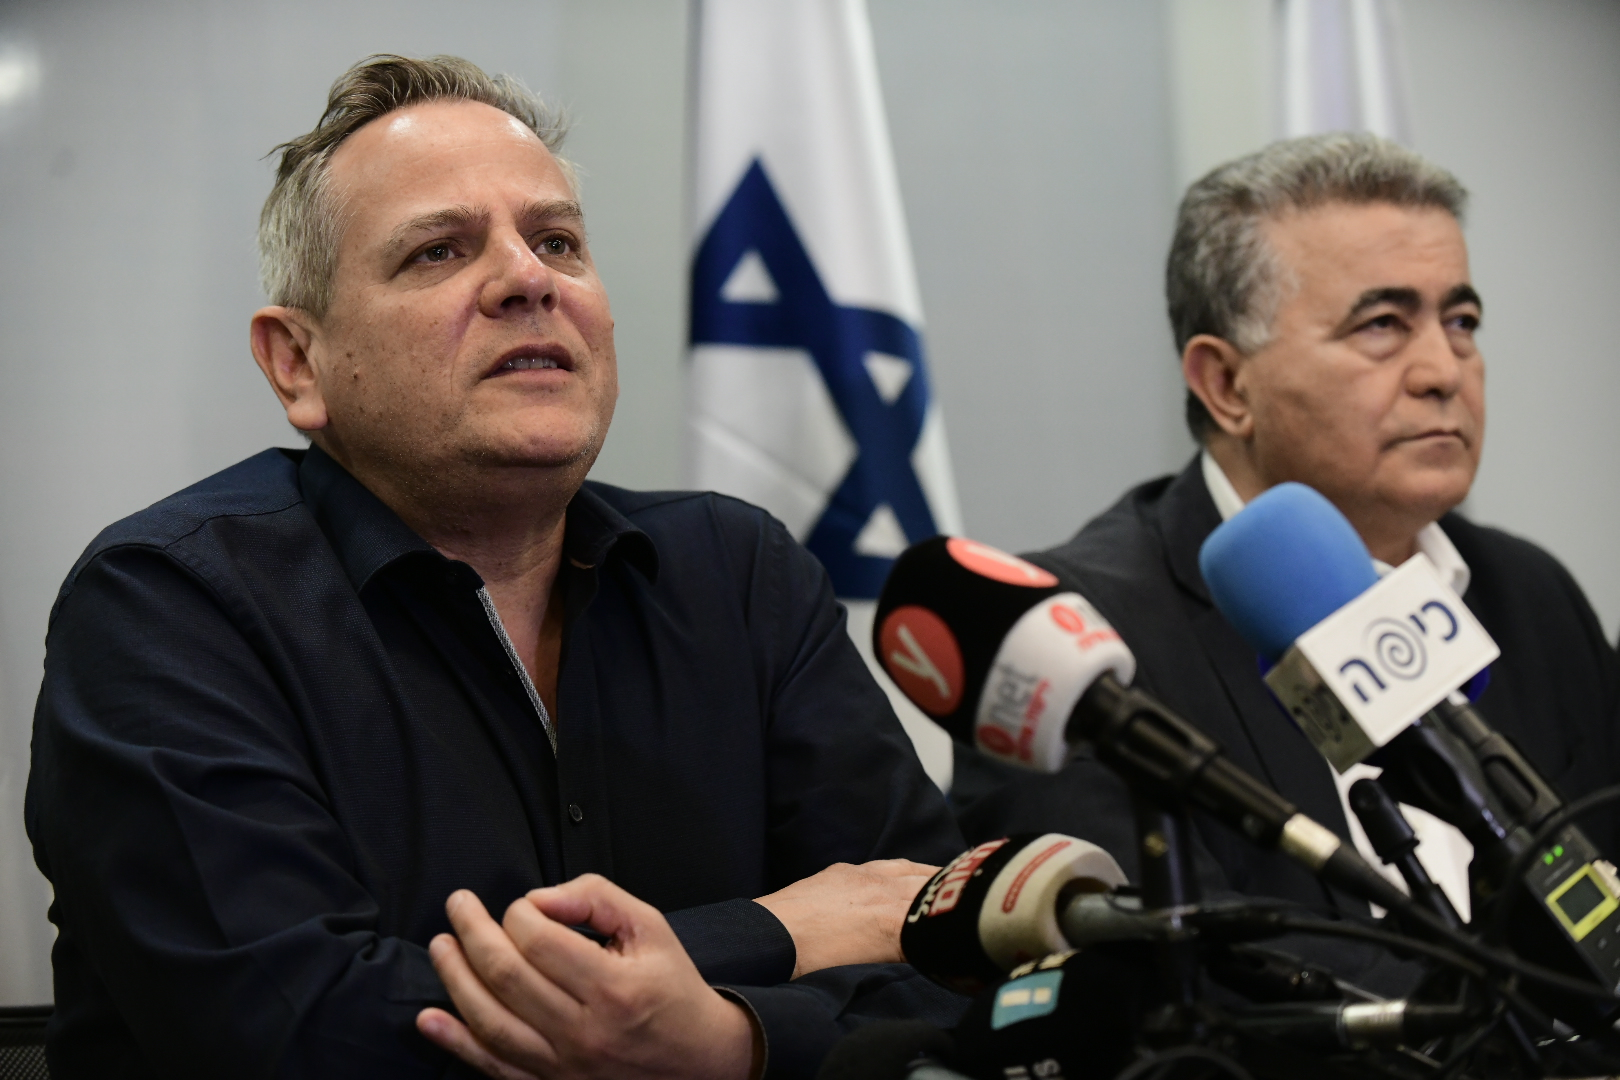 Chairman of the Labor party Amir Peretz and Meretz leader Nitzan Horowitz and party members hold a press conference in Tel Aviv, March 12, 2020. (Tomer Neuberg/Flash90)